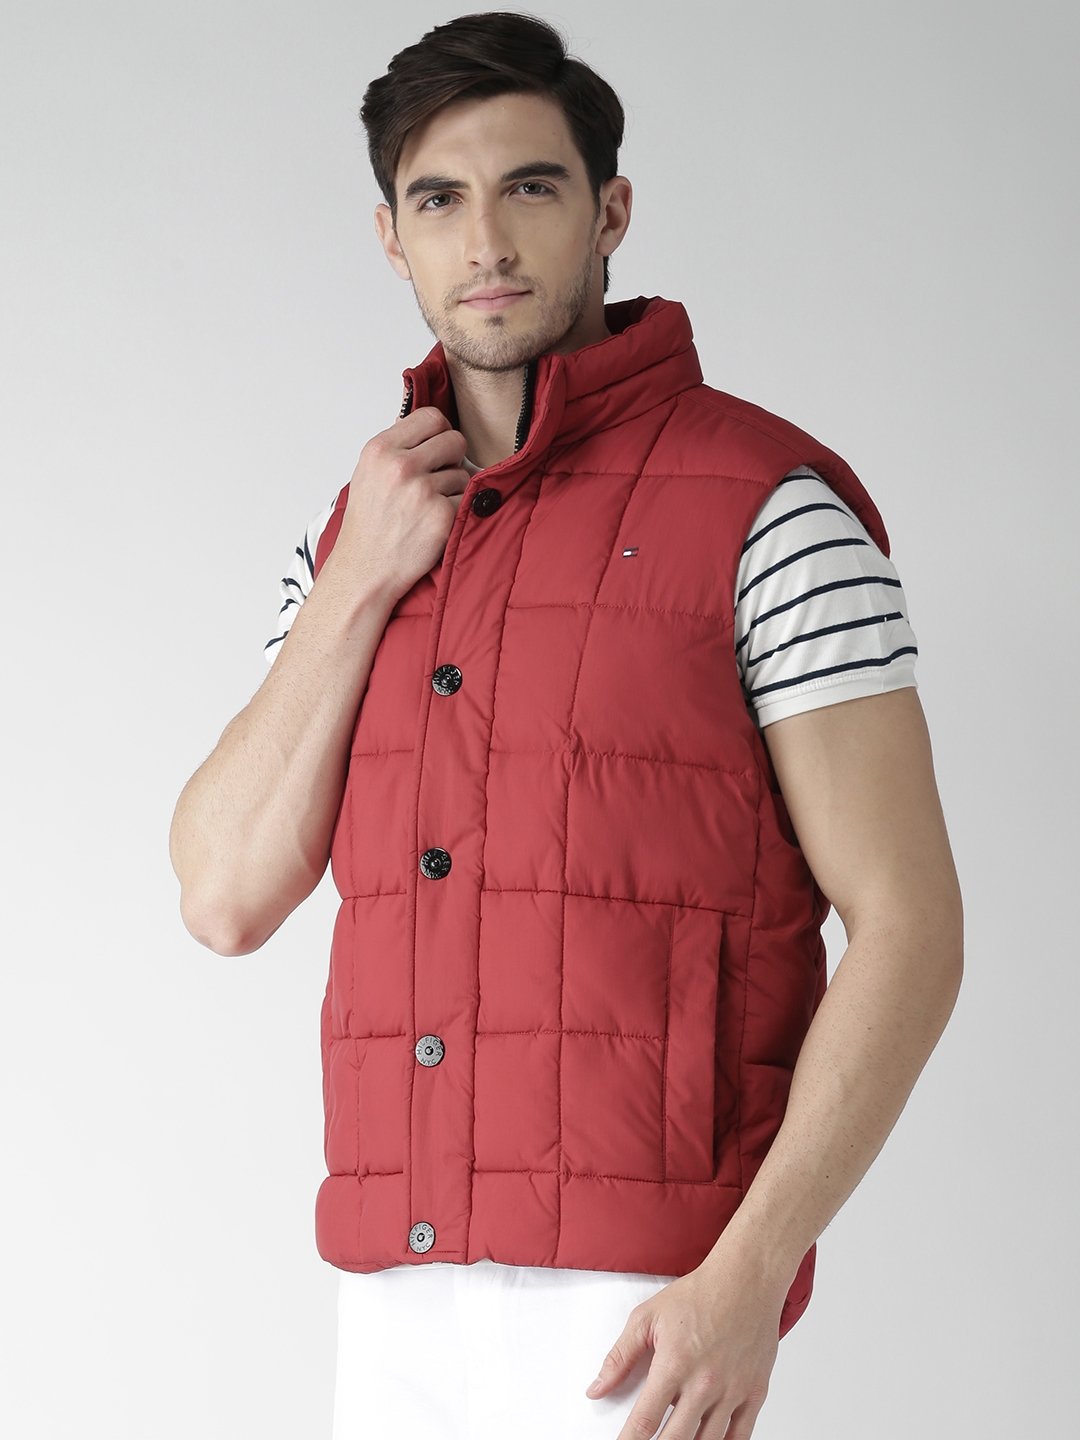 65b1925a531 Buy Tommy Hilfiger Men Coral Red Bas Vest Down Padded Sleeveless ...